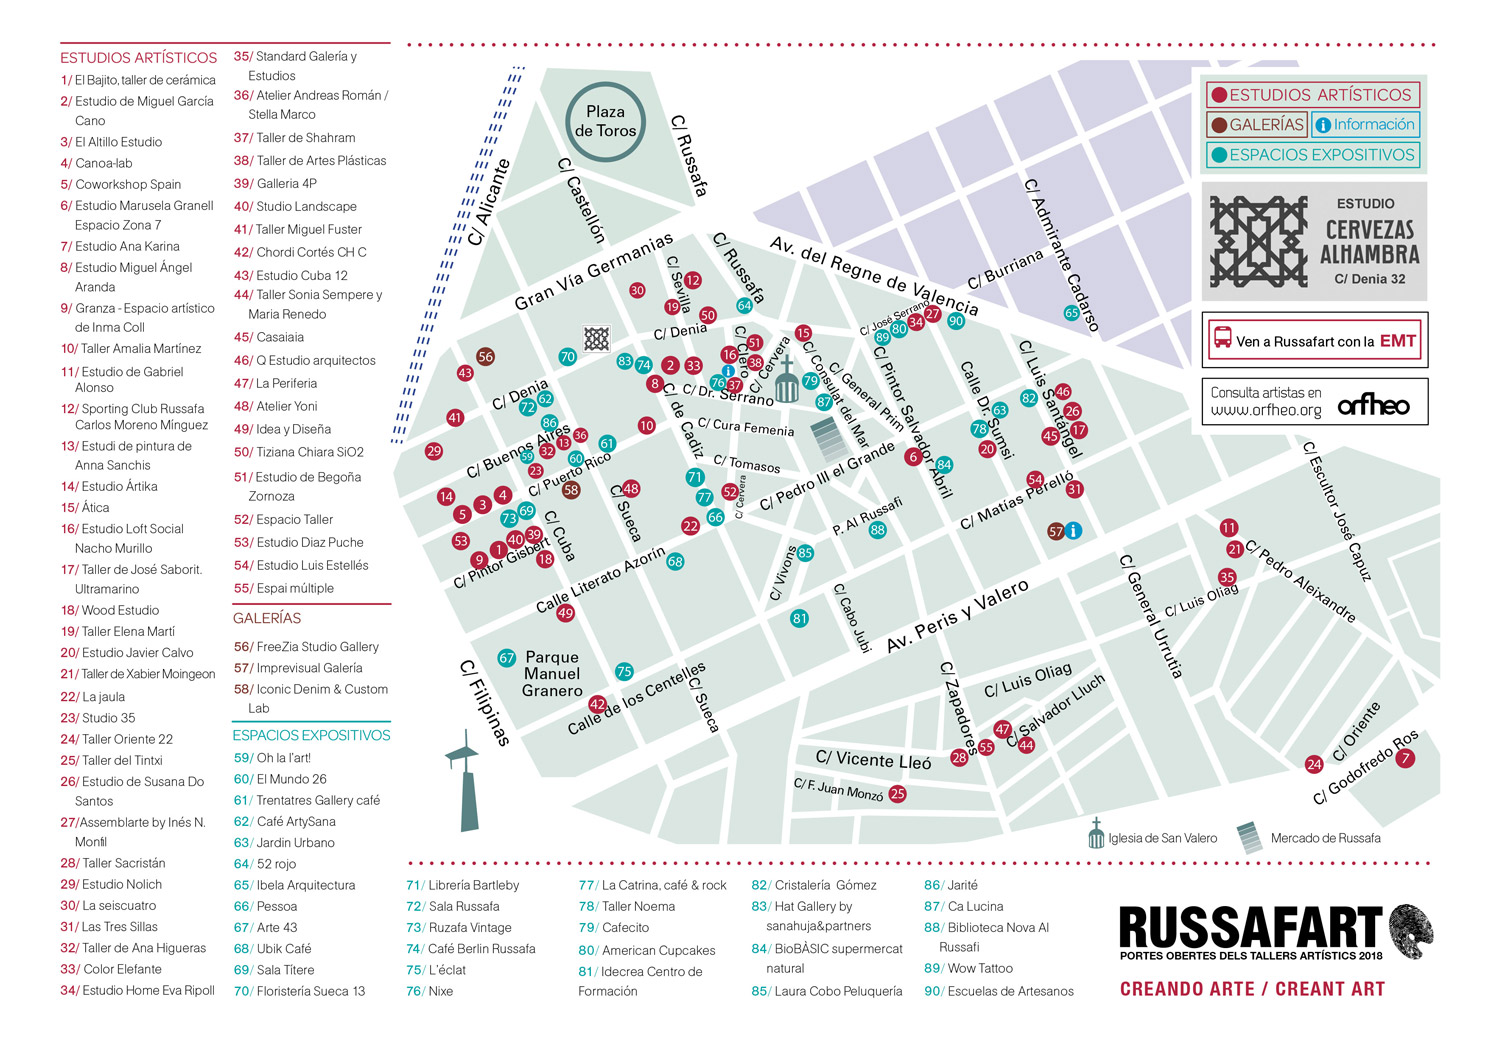 Russafart 2018 -  start with this map, available here